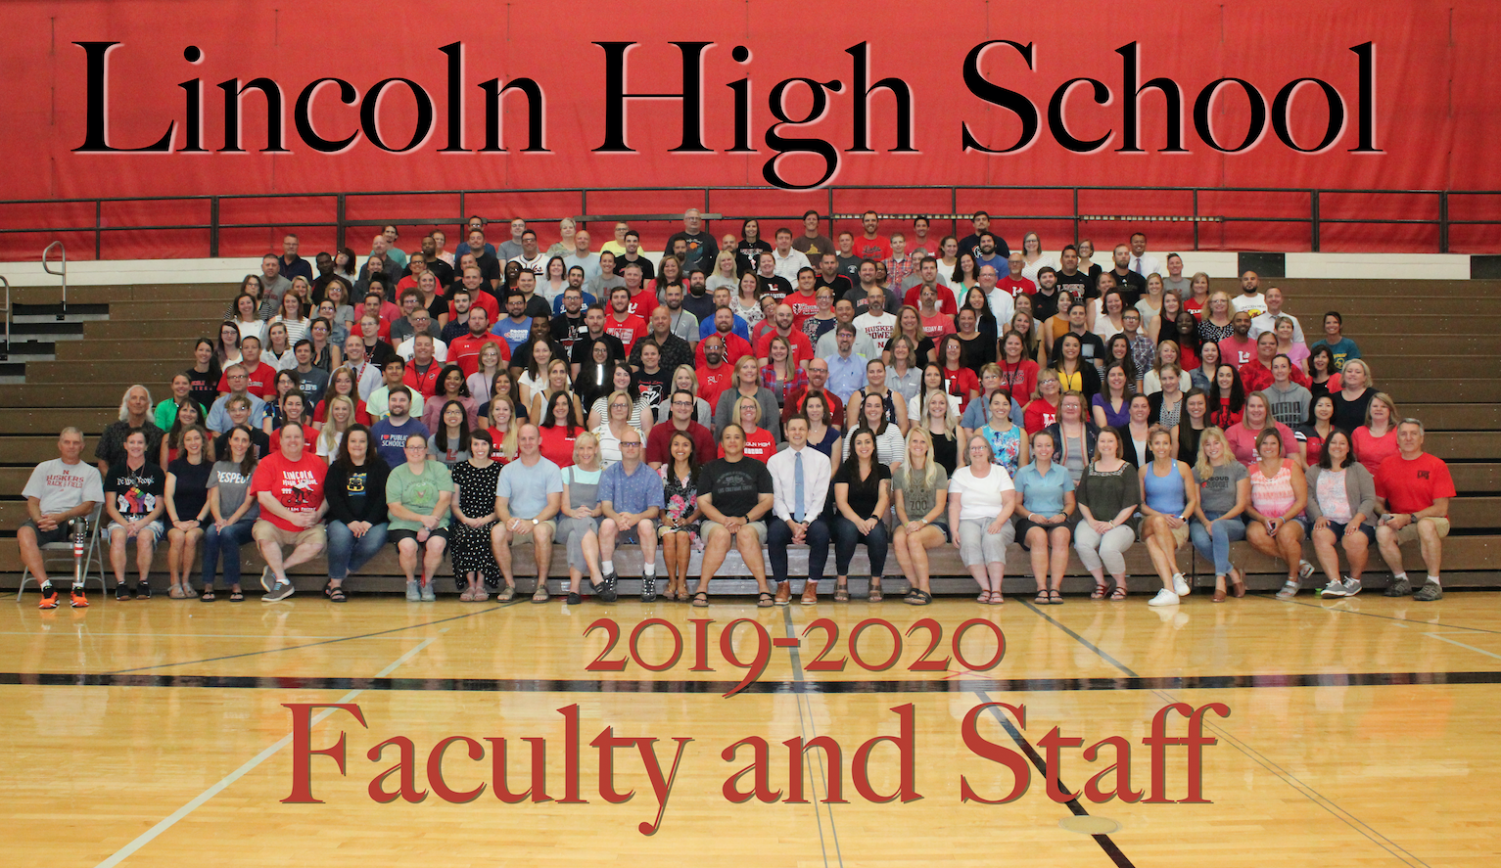 The Lincoln High School 2019-2020 Faculty and Staff pose for a group photo the week before the new school year. LHS welcomes new and returning staff to the building this year. Photo by Greg Keller